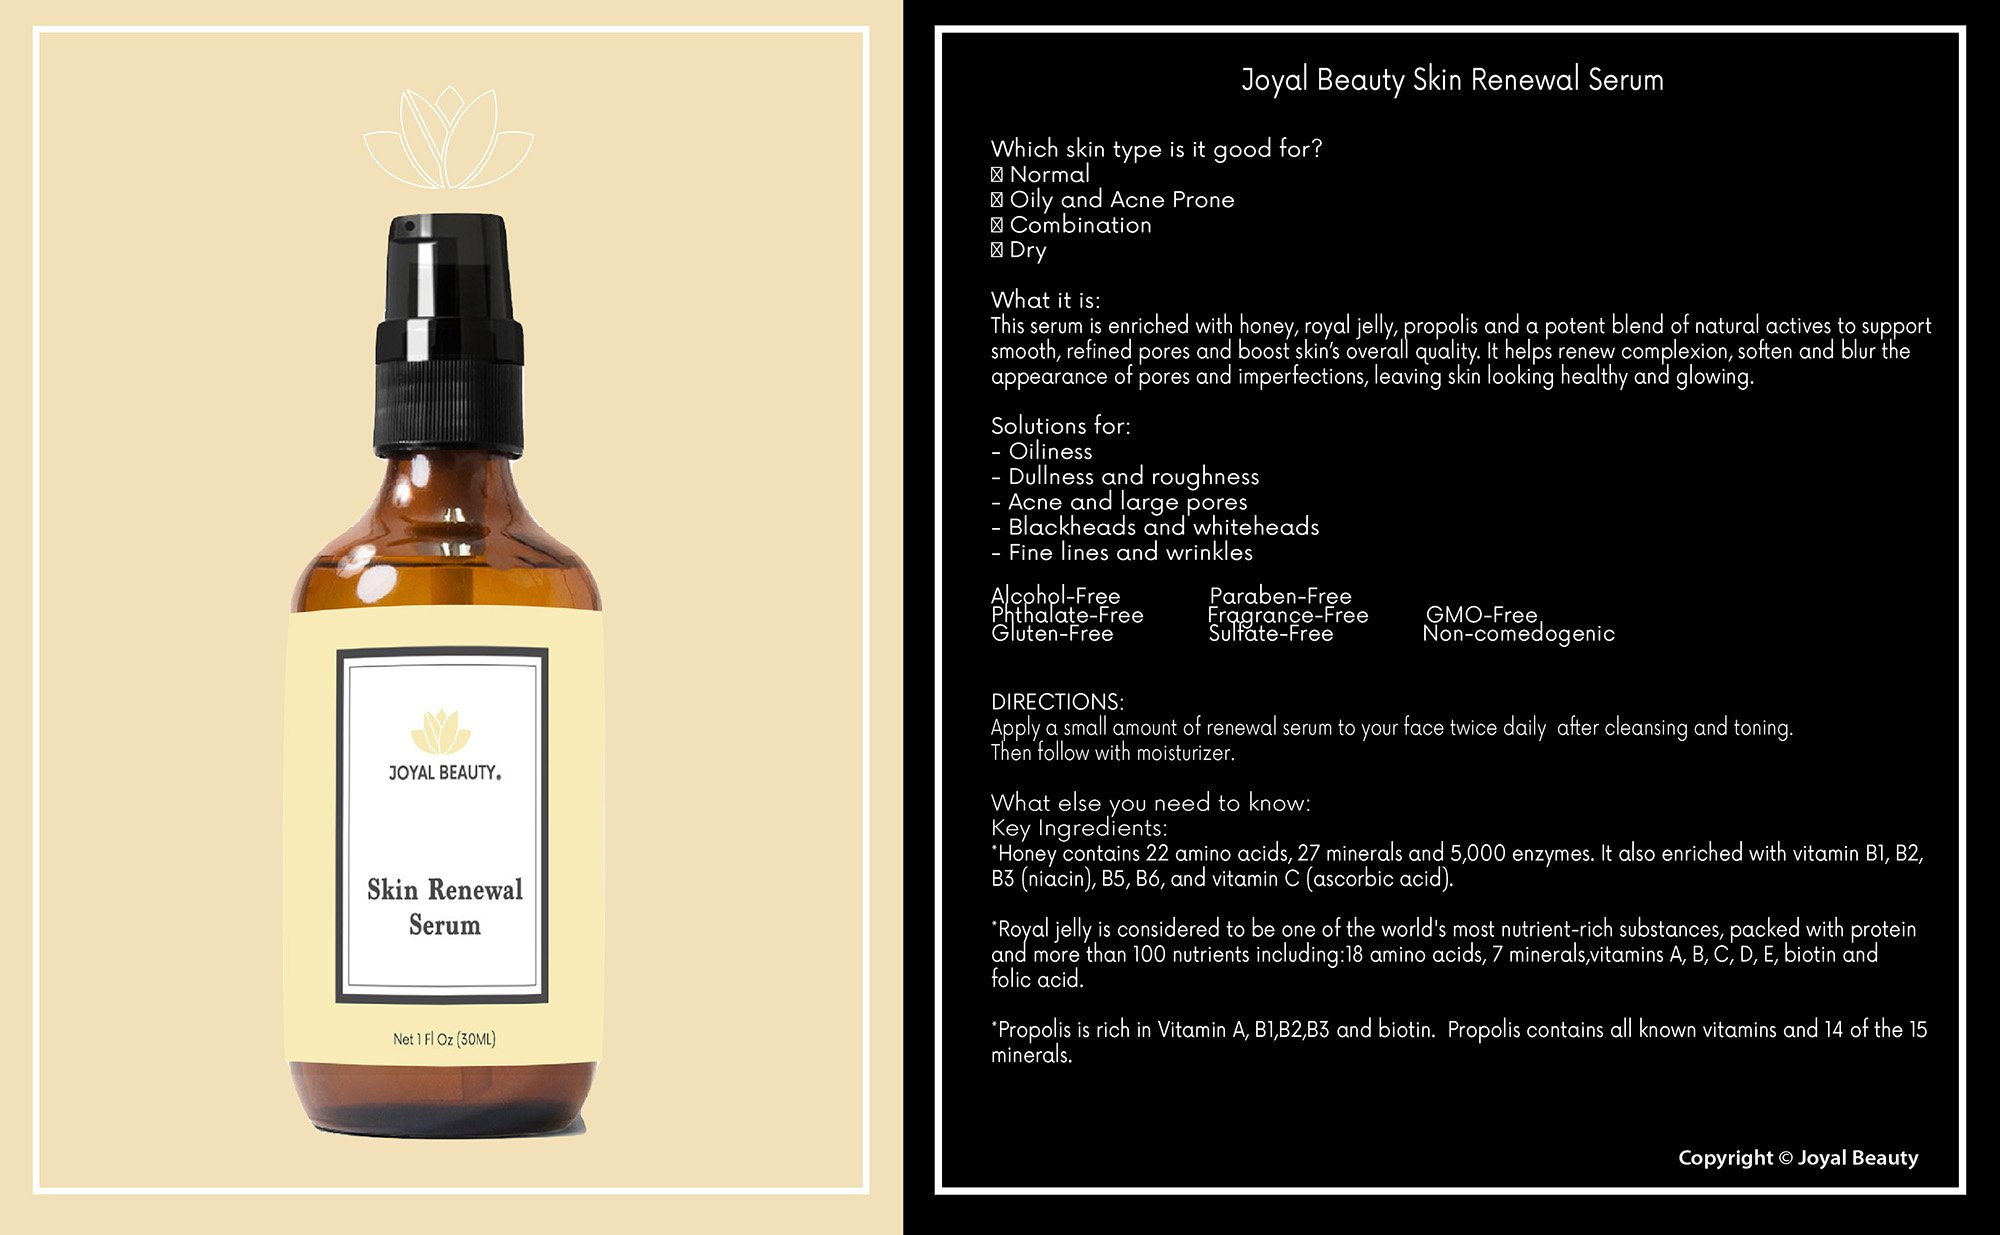 Joyal Beauty Organic Timeless Skin Renewal Serum for Face Skin Eyes. Best Intensive Firming Renewing Resurfacing Solution to Get Your Baby Soft Skin. Enriched with Honey, Royal Jelly, Bee Propolis. by Joyal Beauty (Image #2)